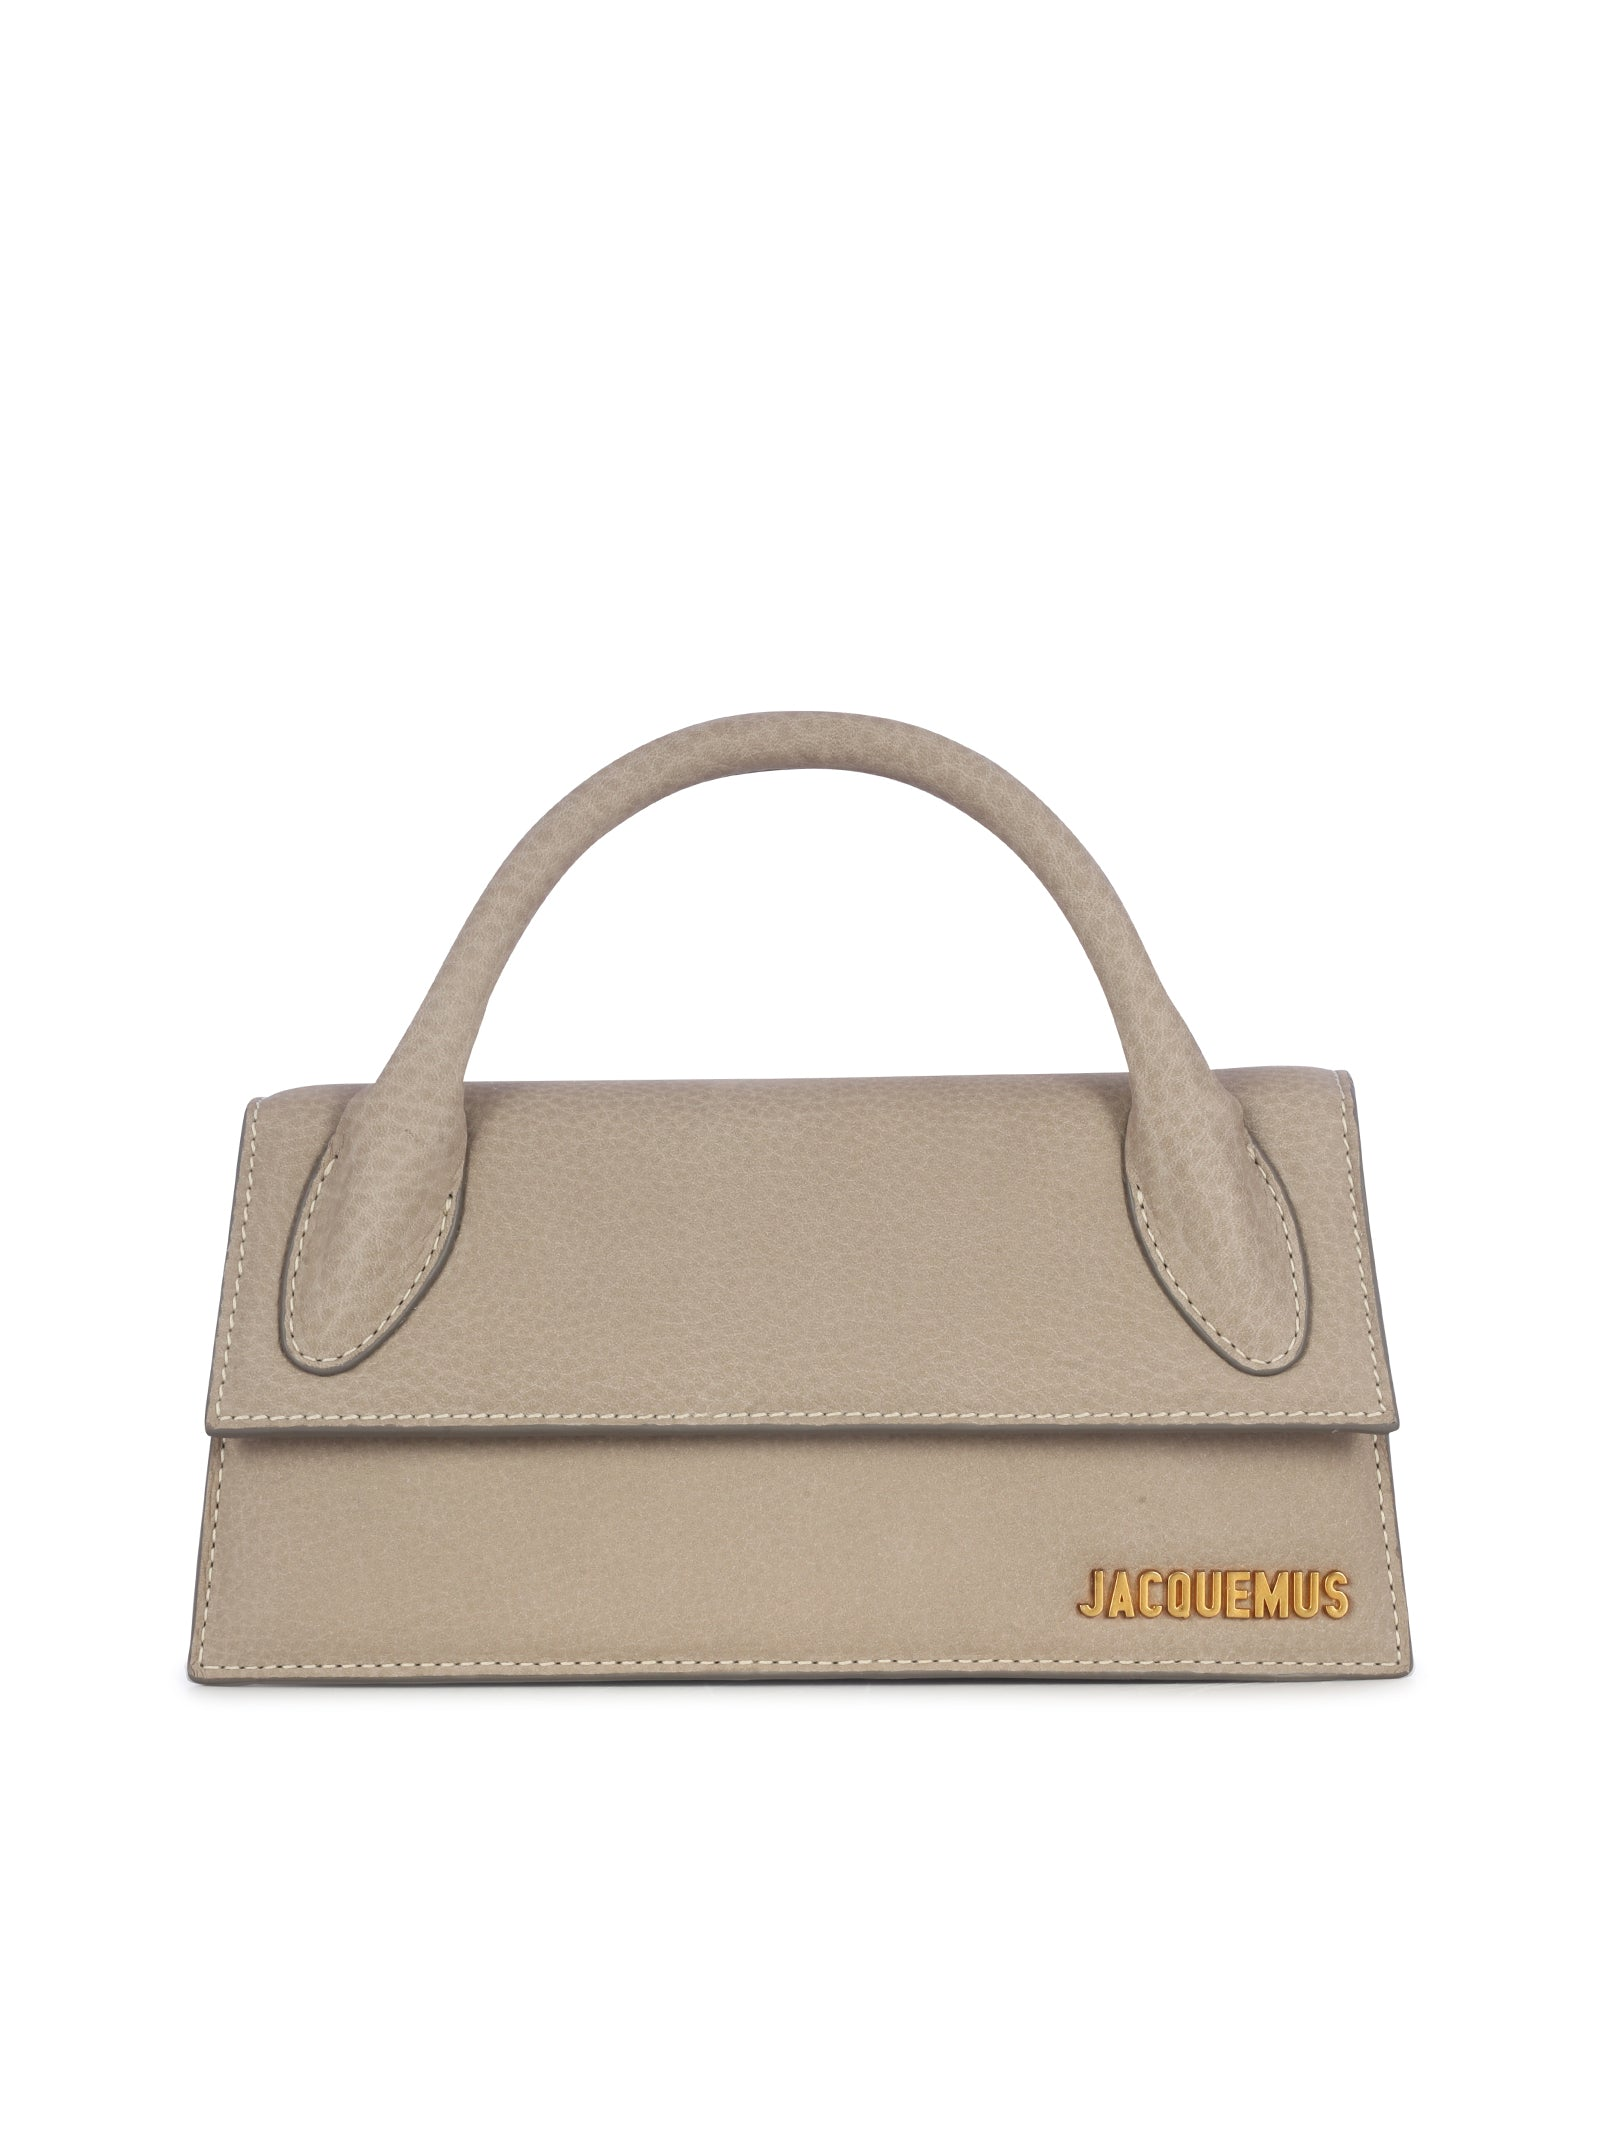 Le Chiquito Long shoulder bag